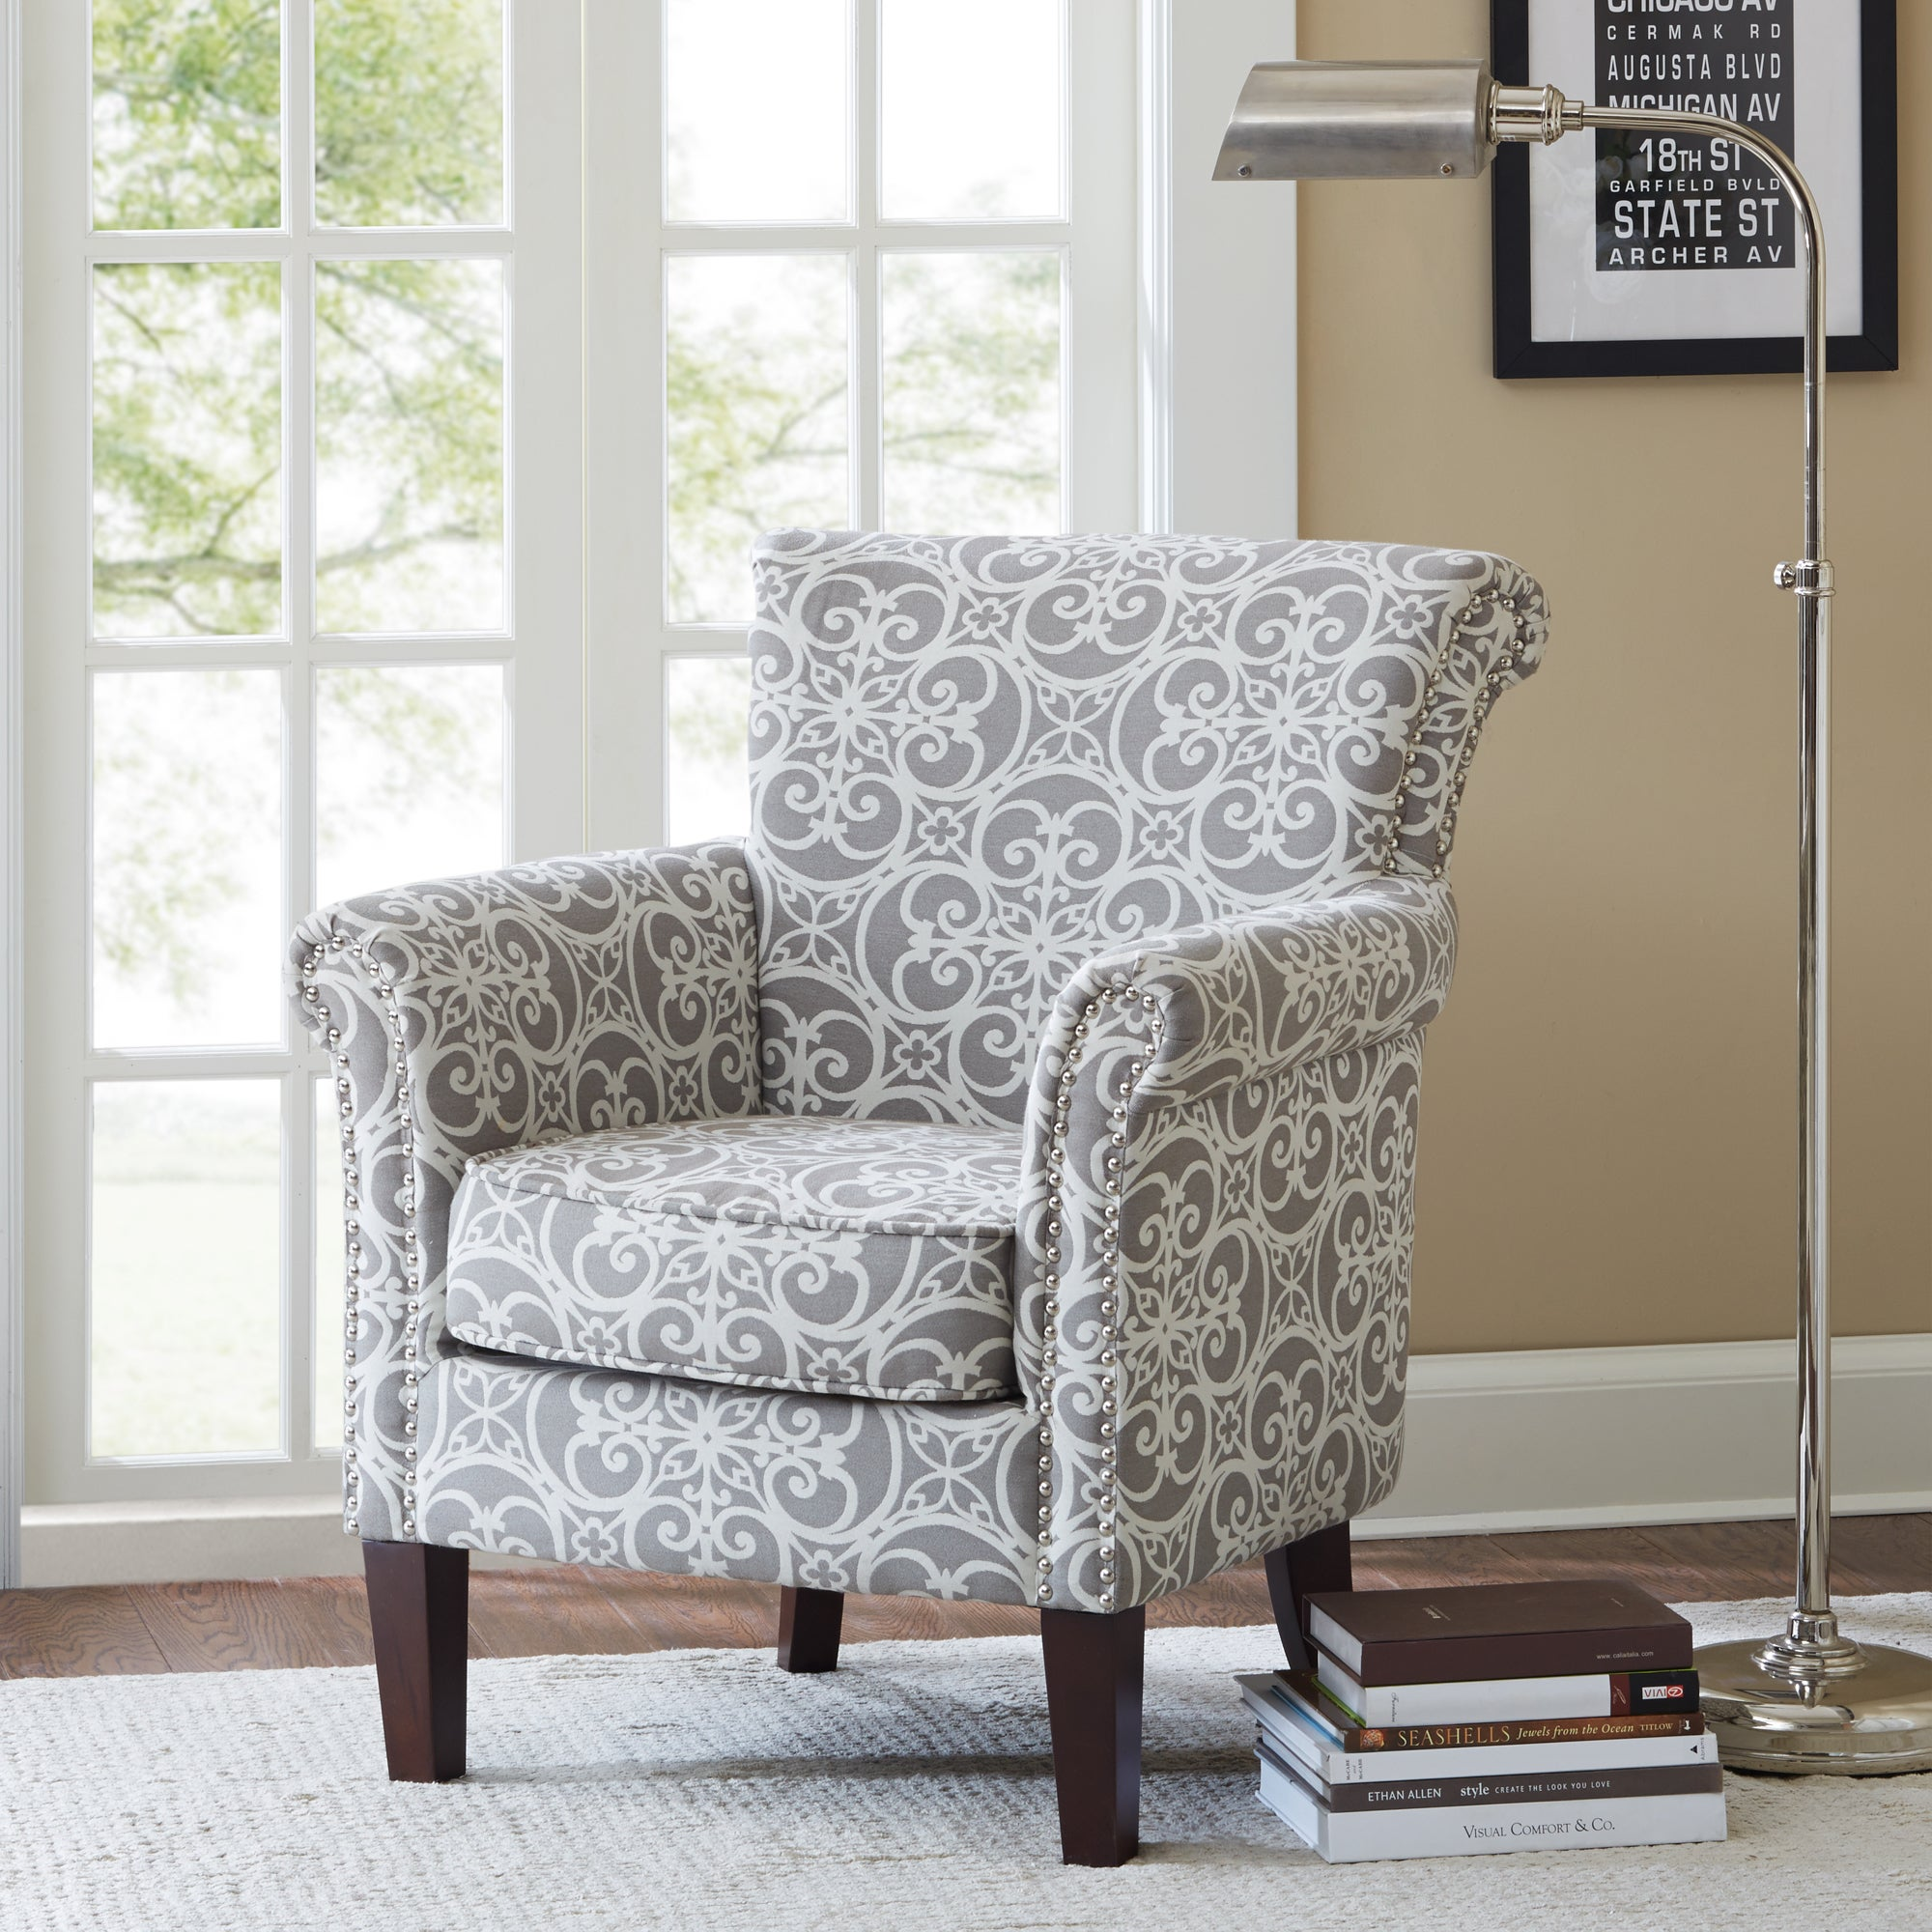 Buy Club Chairs Madison Park Living Room Chairs Online At Overstock.com |  Our Best Living Room Furniture Deals